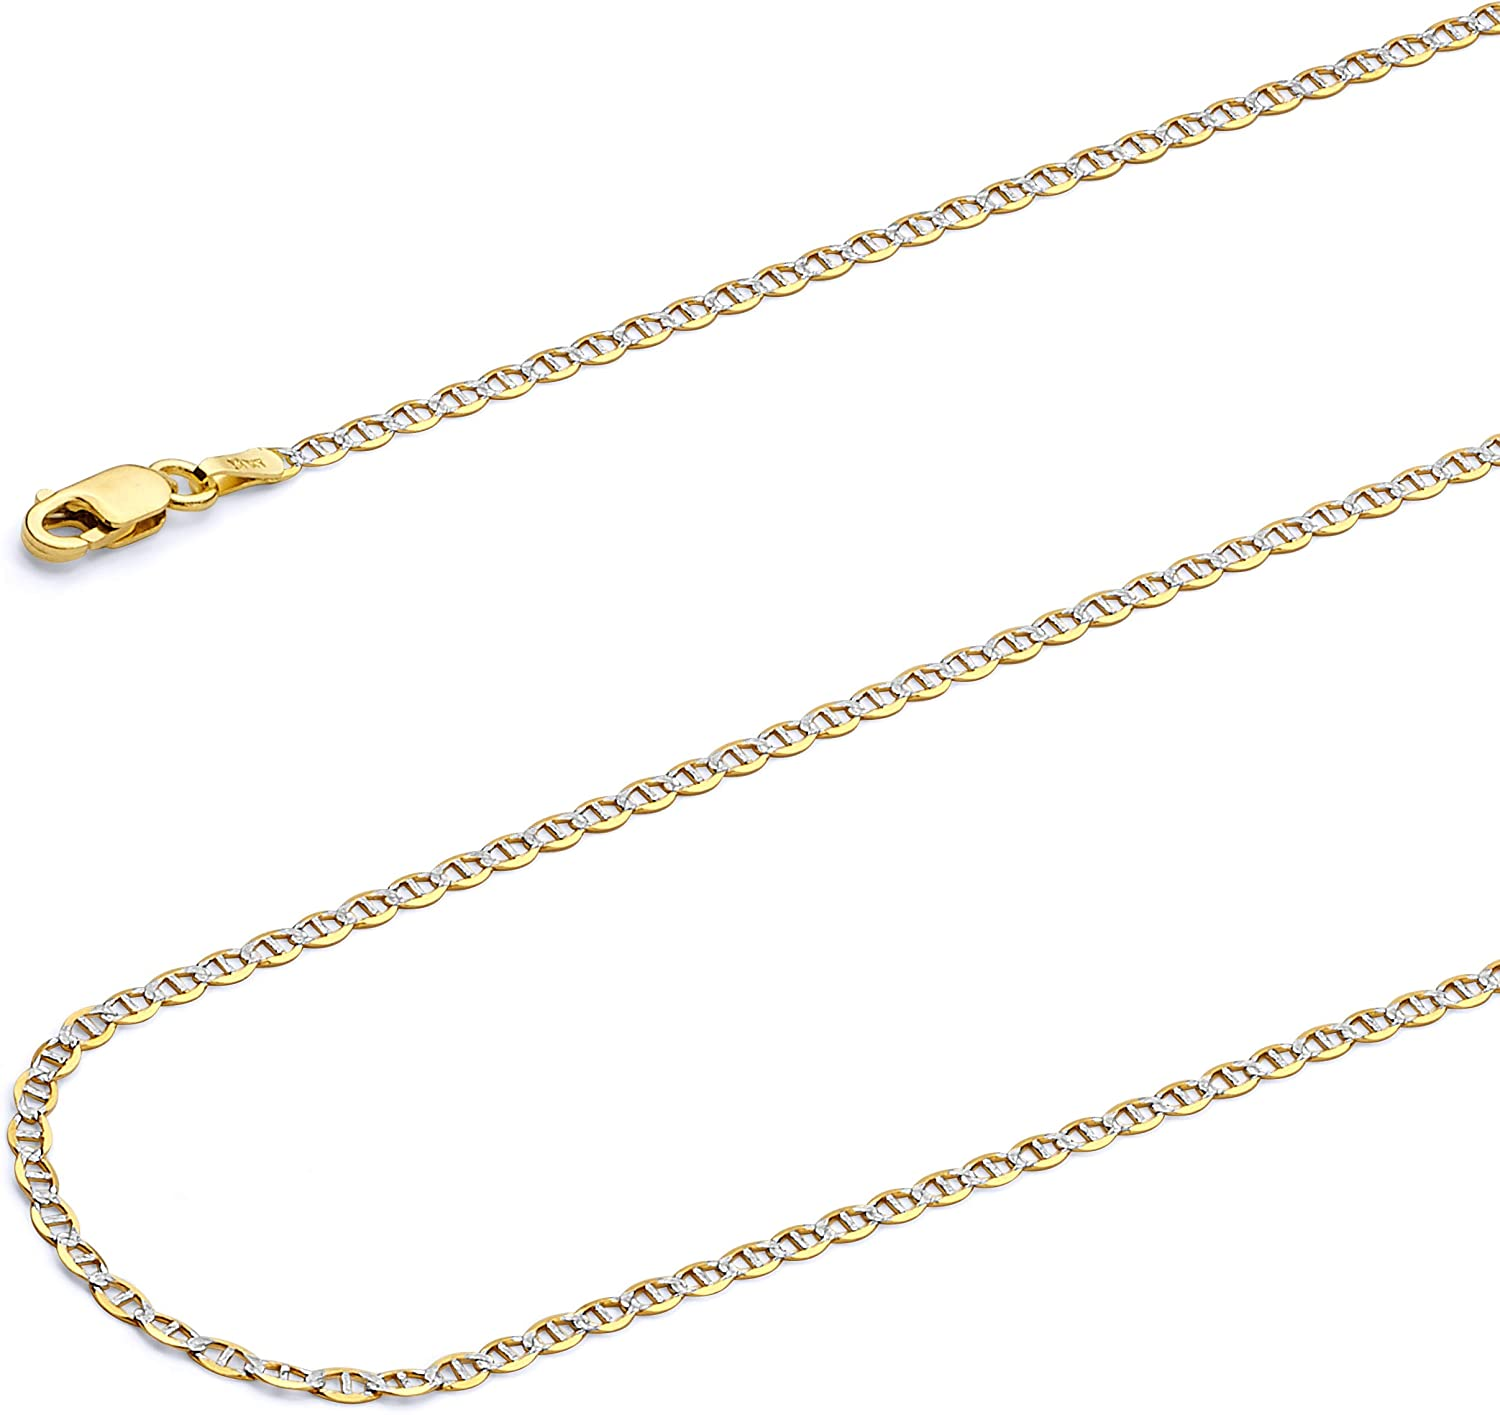 Wellingsale 14k Two Tone Yellow and White Gold Brilliant Solid 2mm Flat Mariner White Pave Diamond Cut Chain Necklace with Lobster Claw Clasp